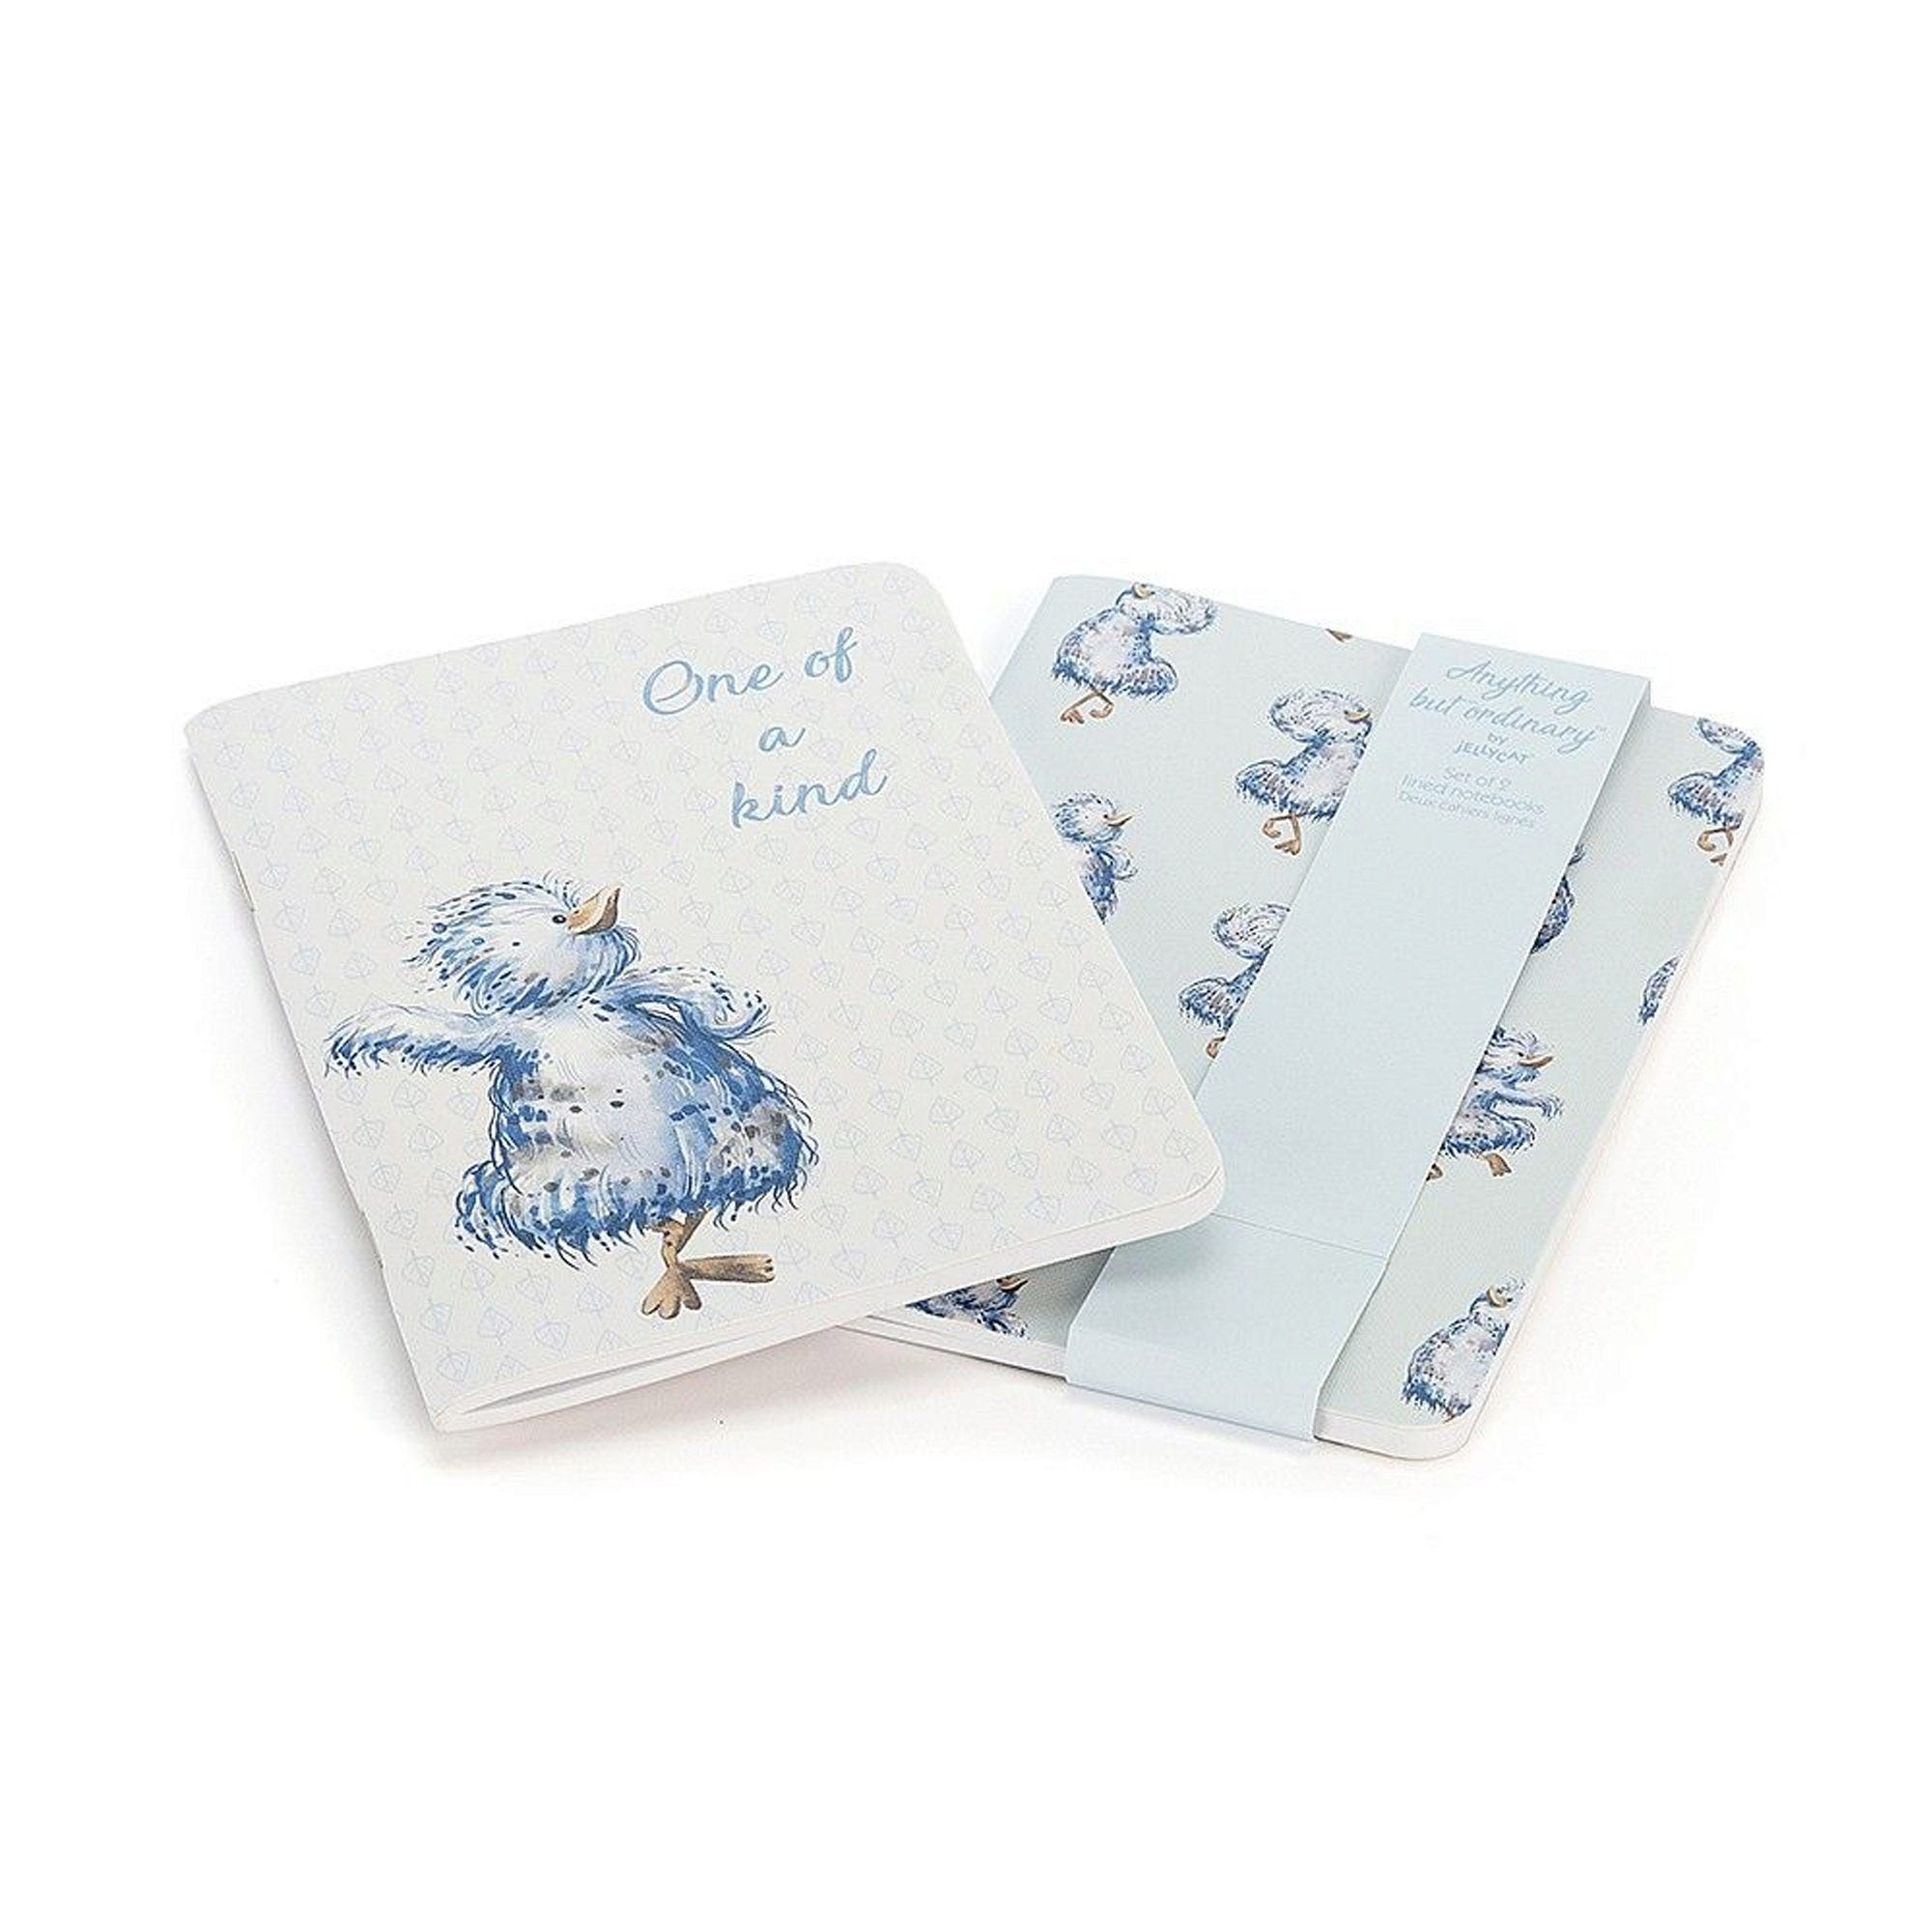 Anything But Ordinary 2 Pack NOTEBOOK Set- Qty 24